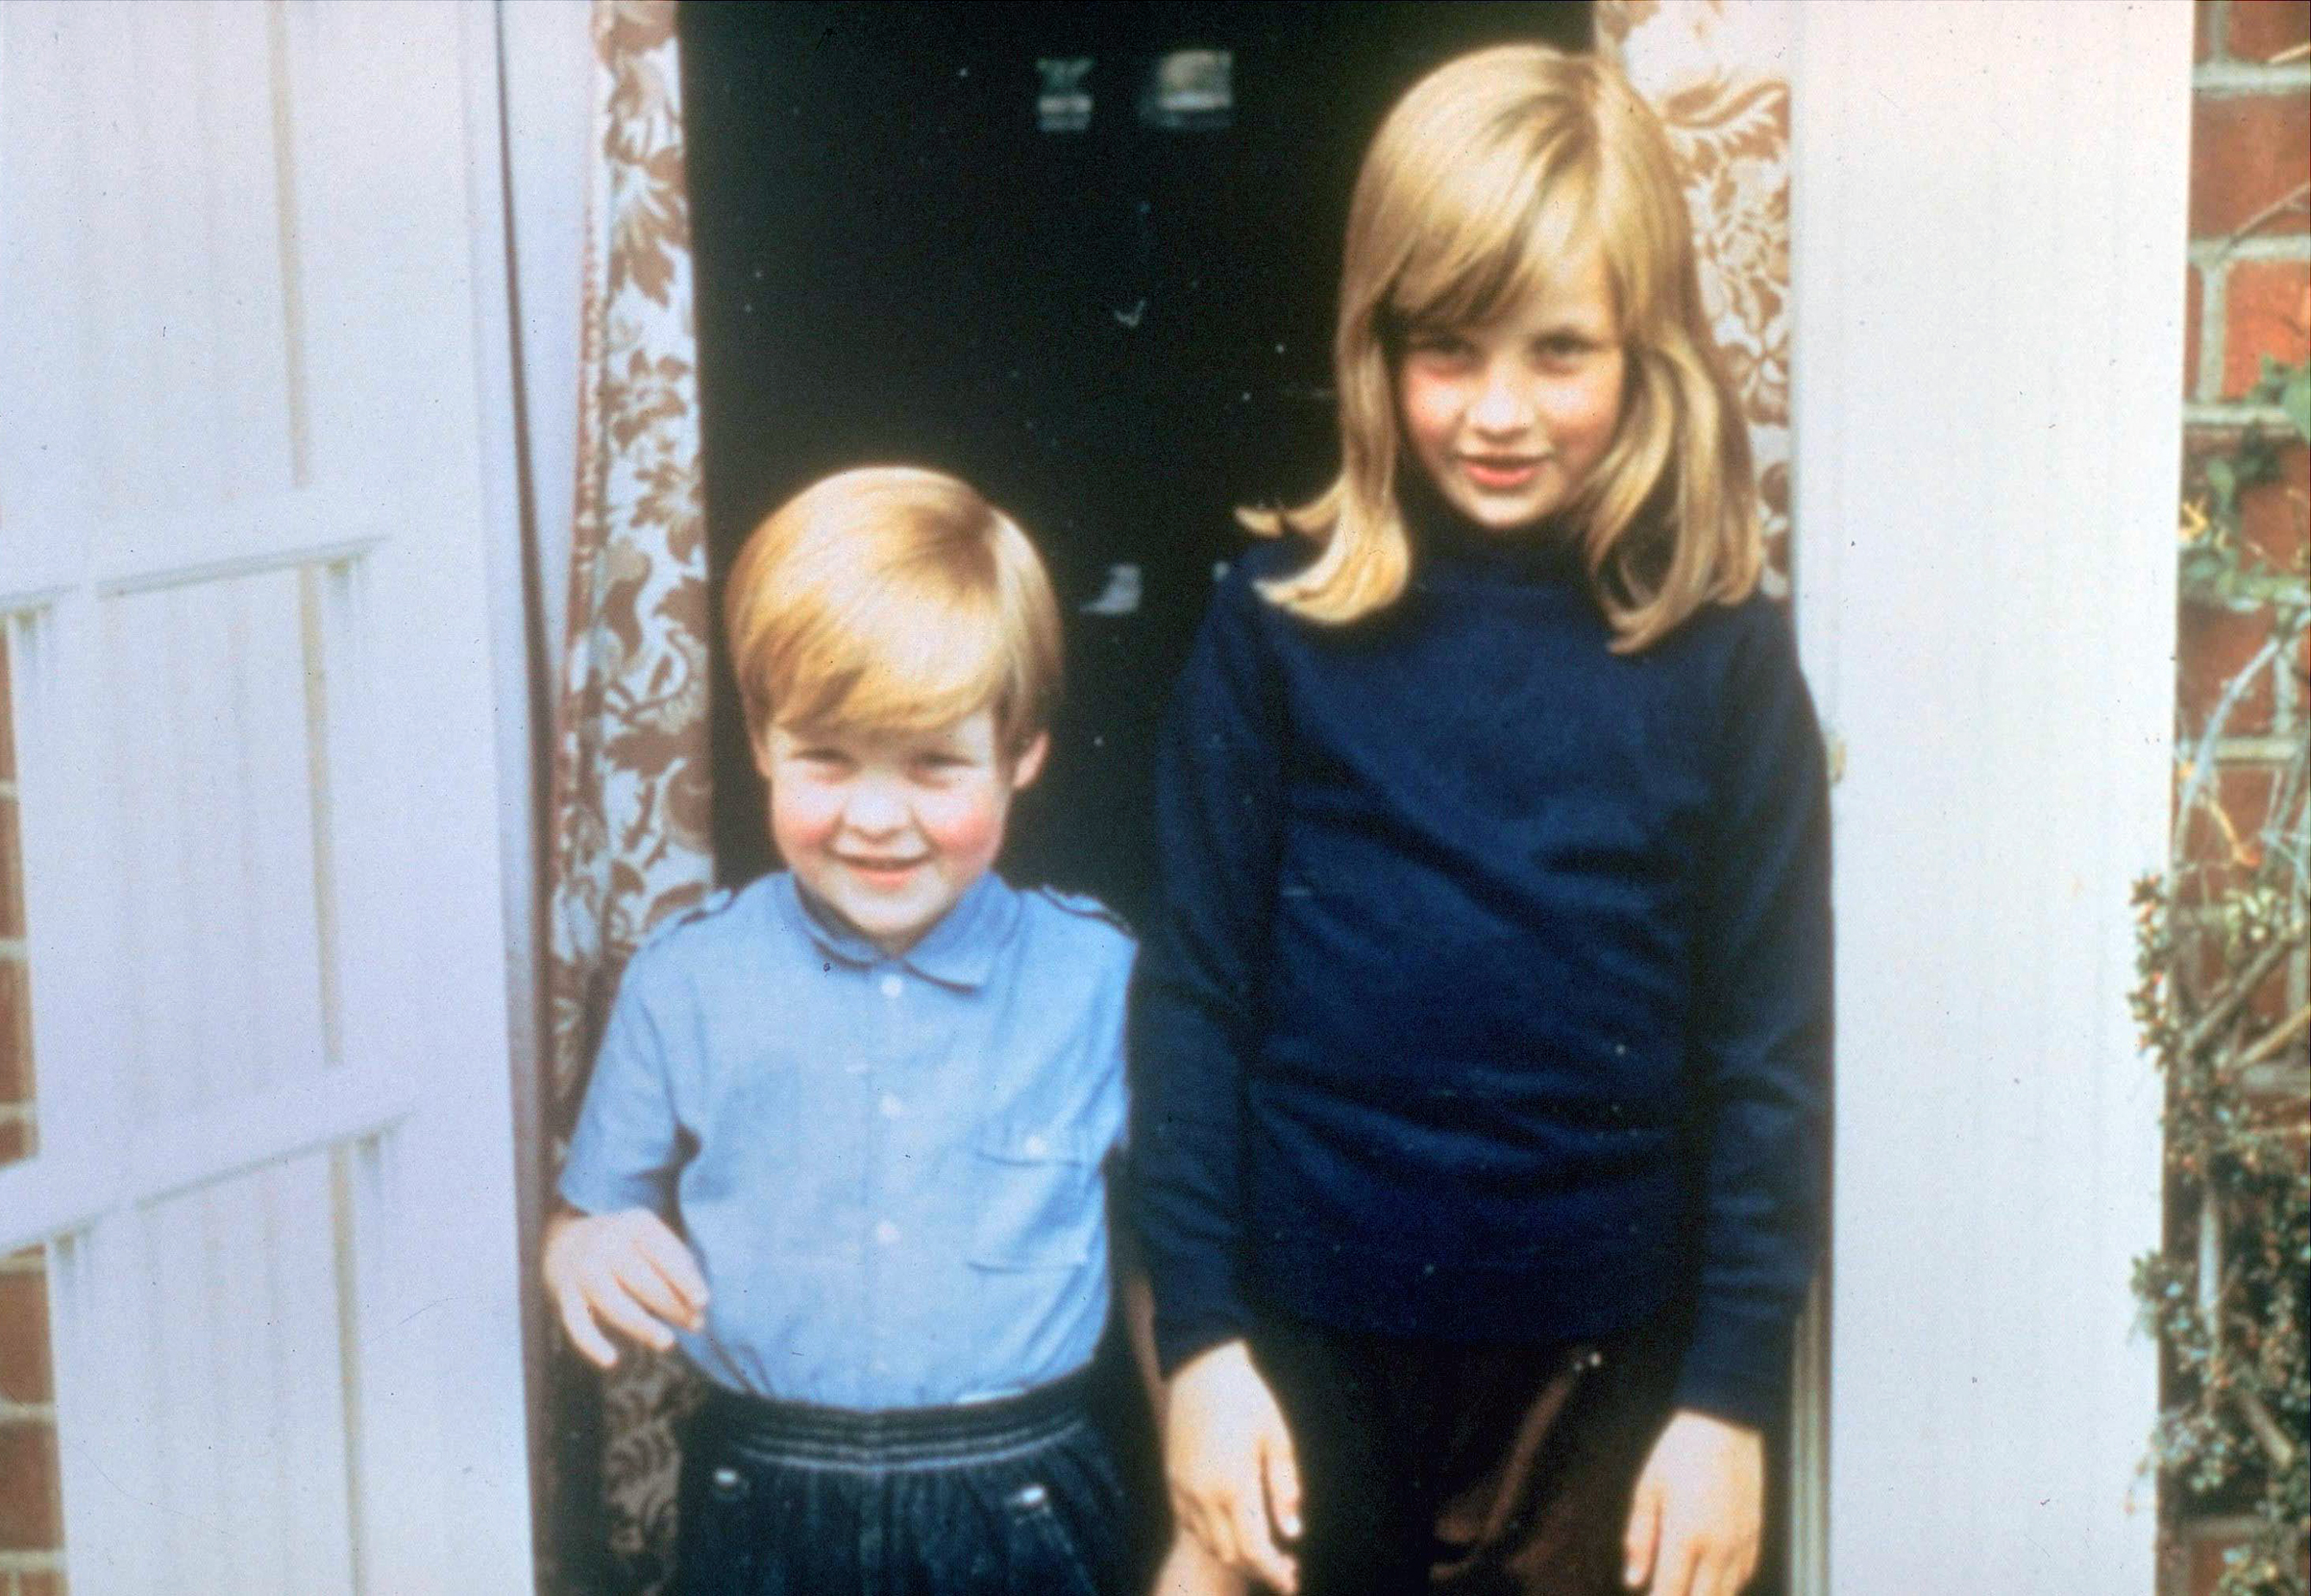 Lady Diana Spencer with her brother Charles, Viscount Althorp, (Earl Spencer) at their home in Berkshire.